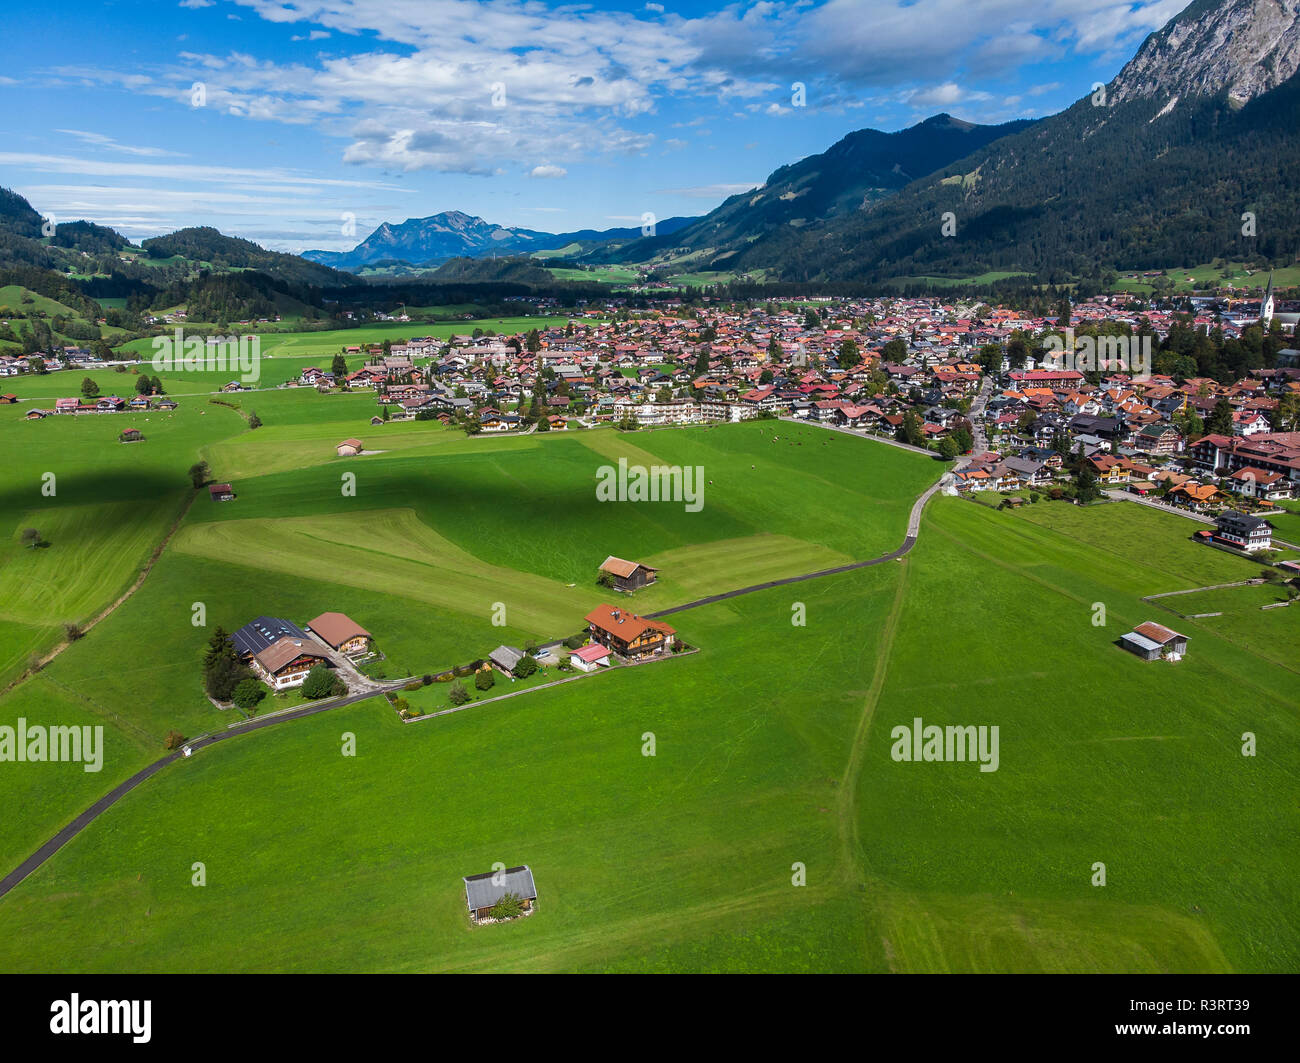 Germany, Bavaria, Swabia, Aerial view of Oberstdorf Stock Photo